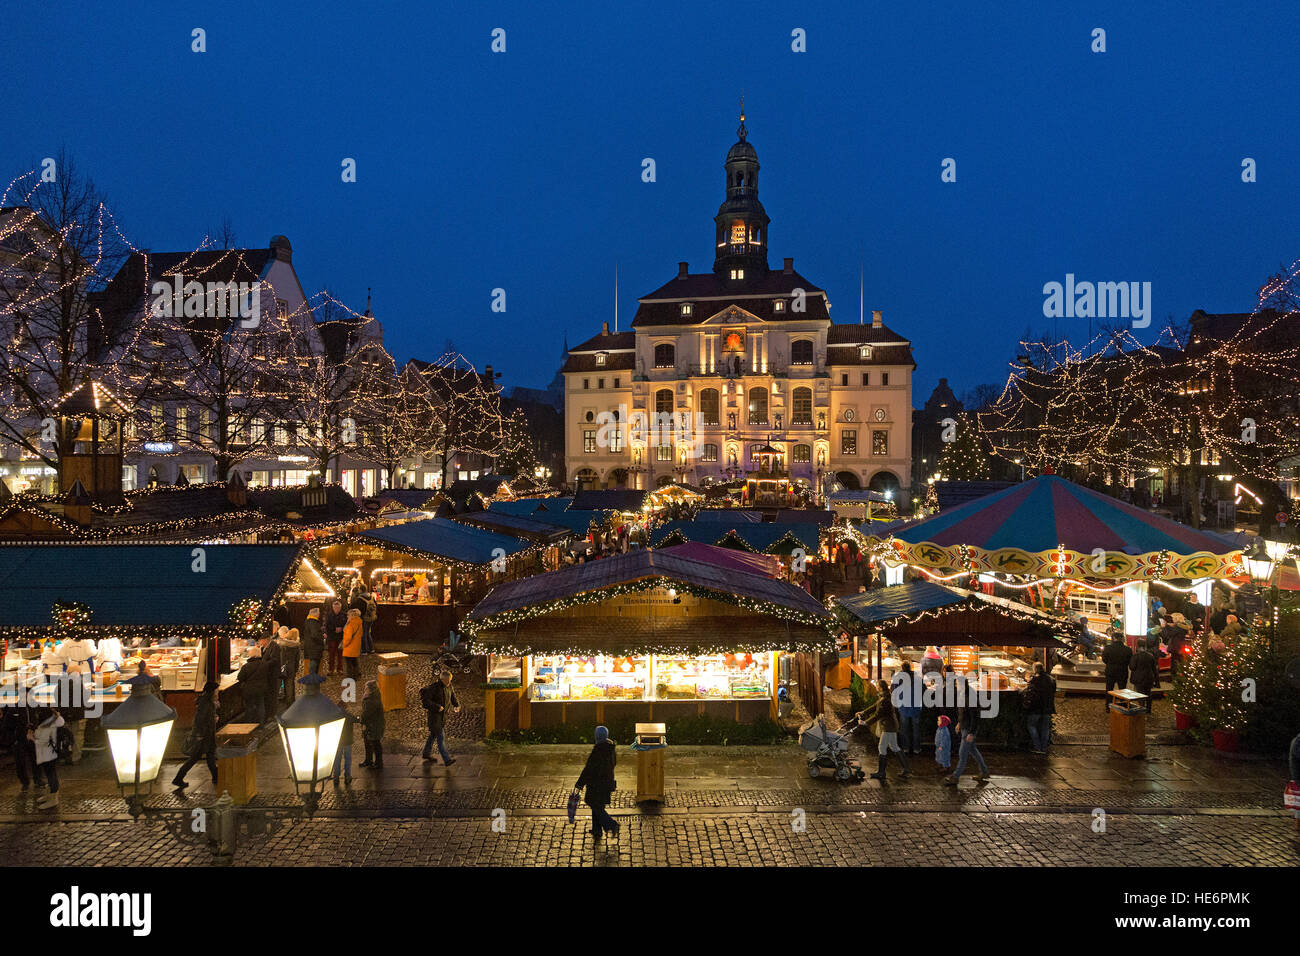 Christmas Market, town hall, Lueneburg, Lower Saxony, Germany Stock Photo